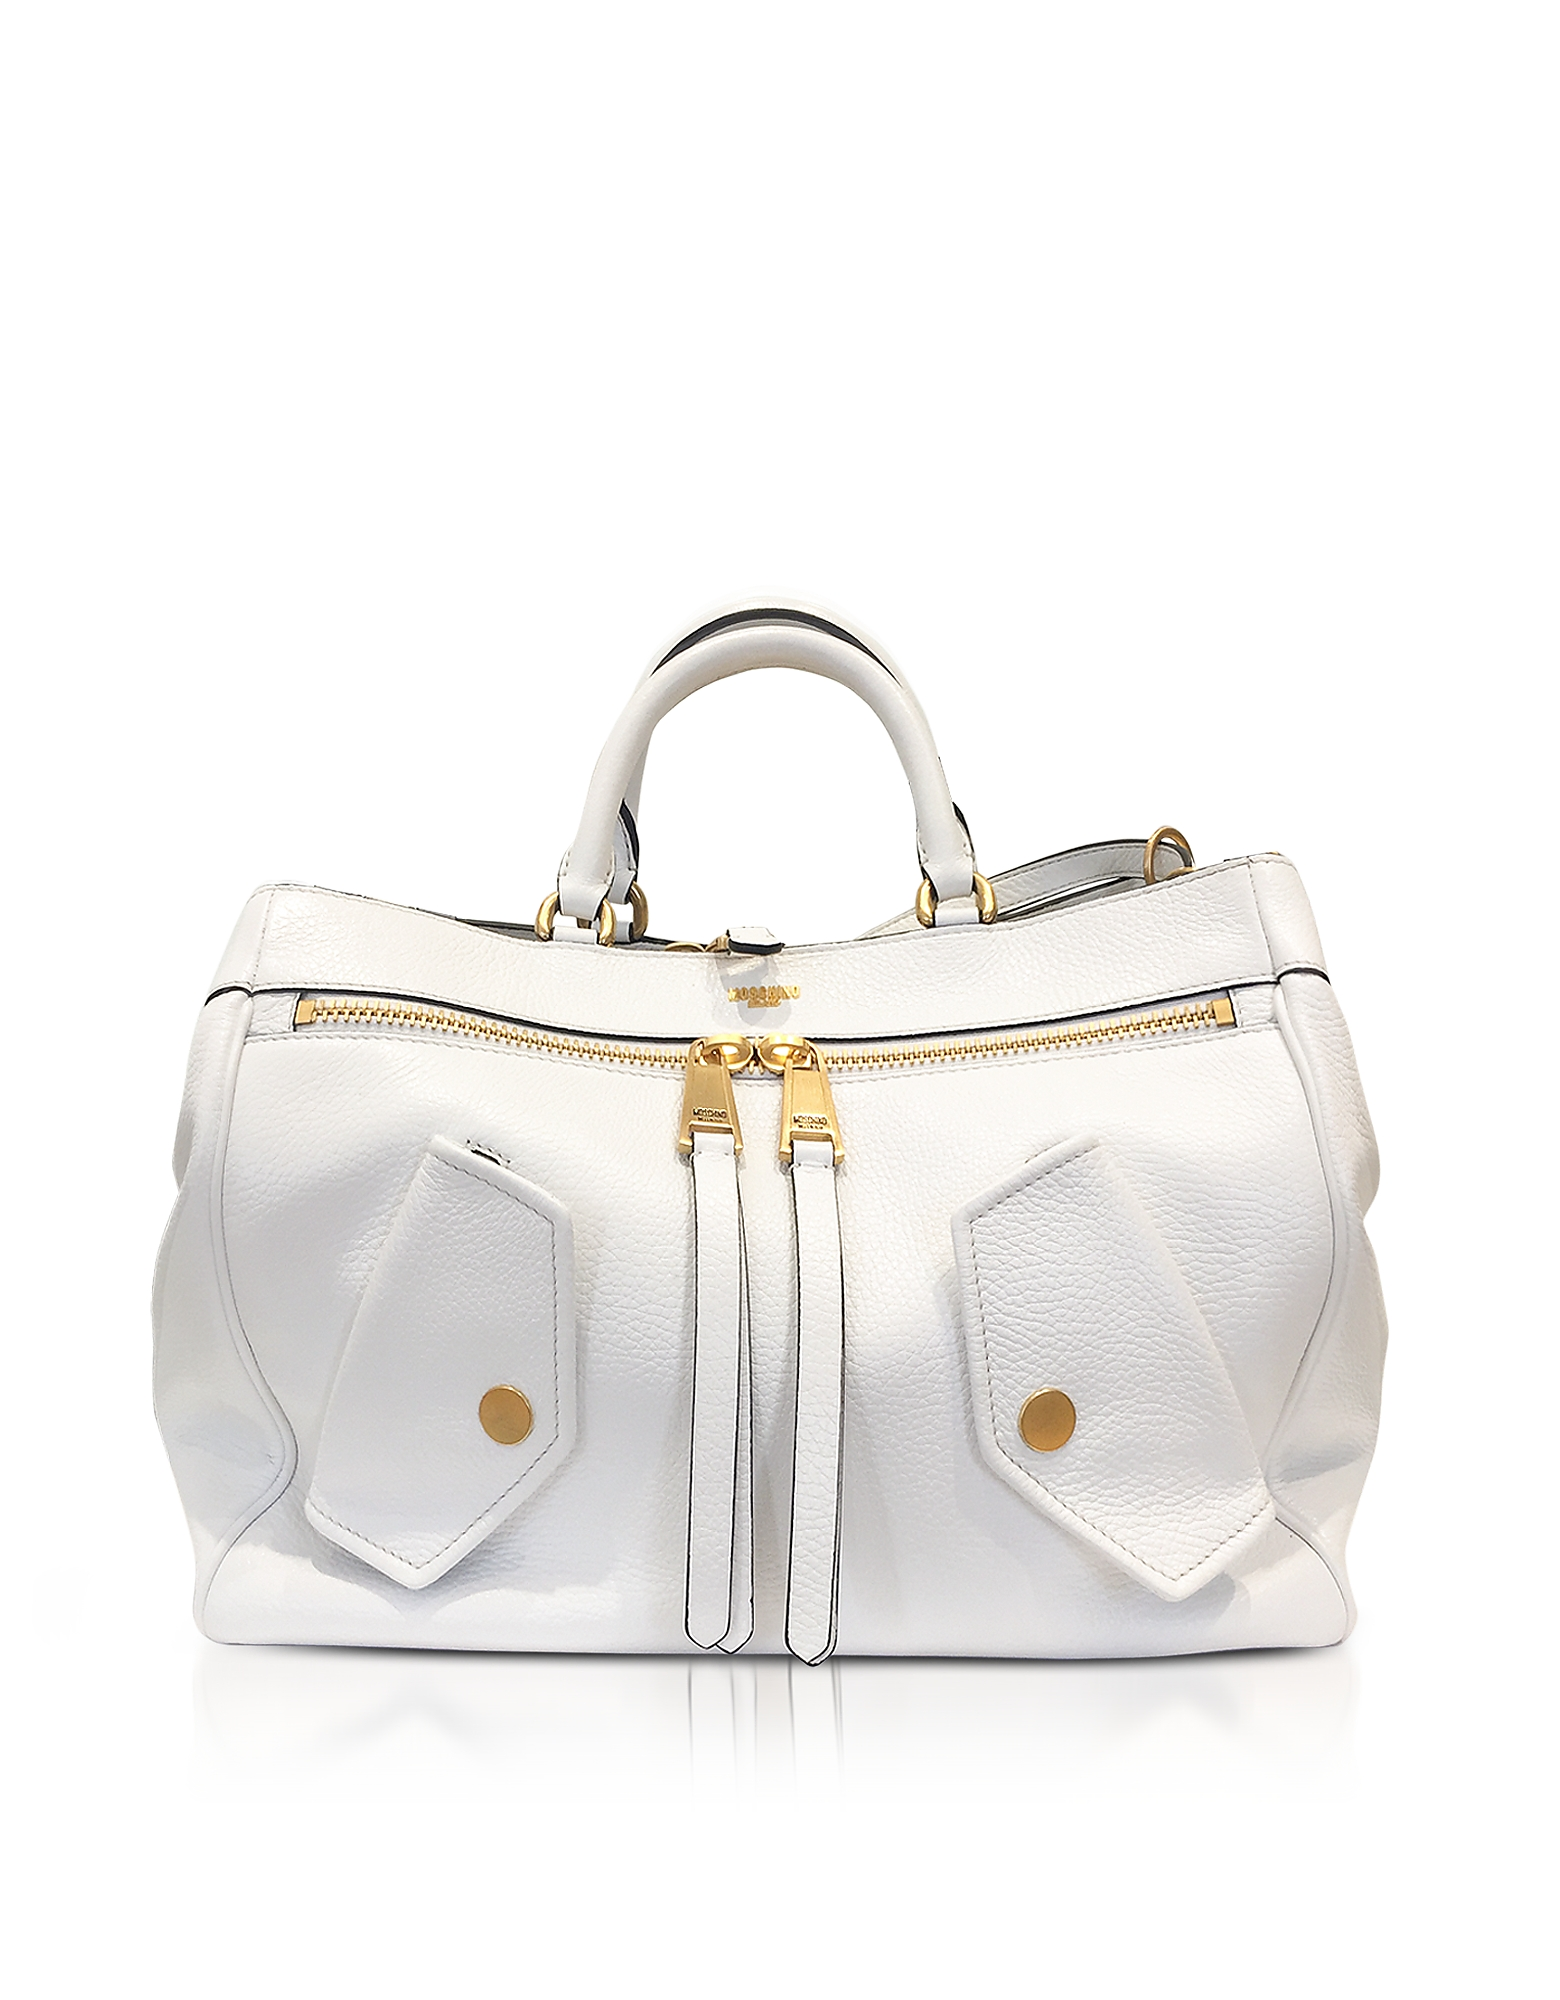 Moschino White Leather Shoulder Bag